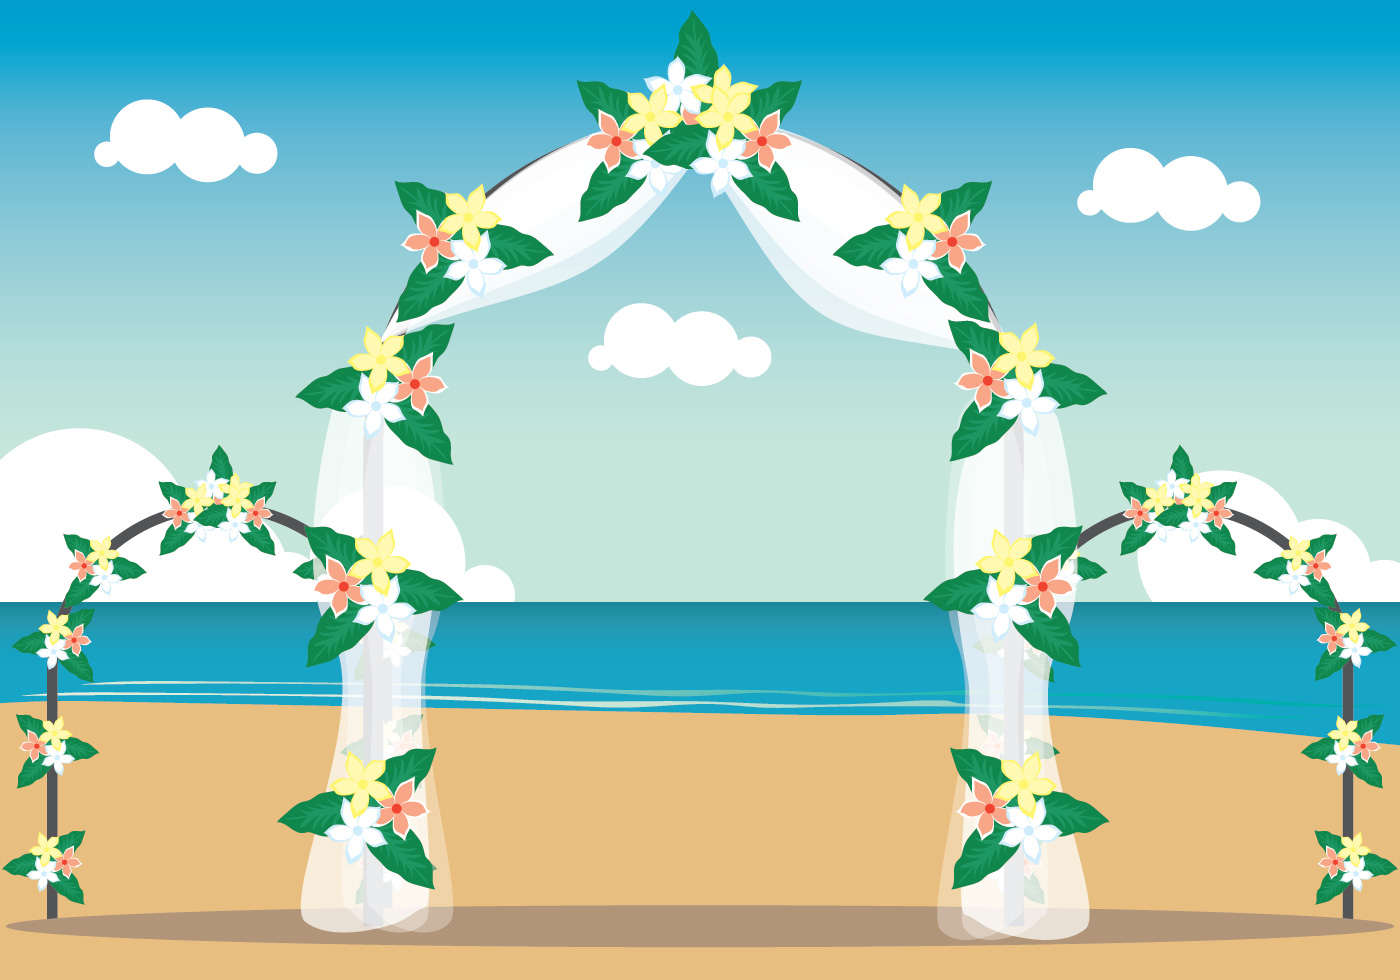 Cute Couple Holding Hand Wallpaper Beach Wedding Illustration Download Free Vector Art